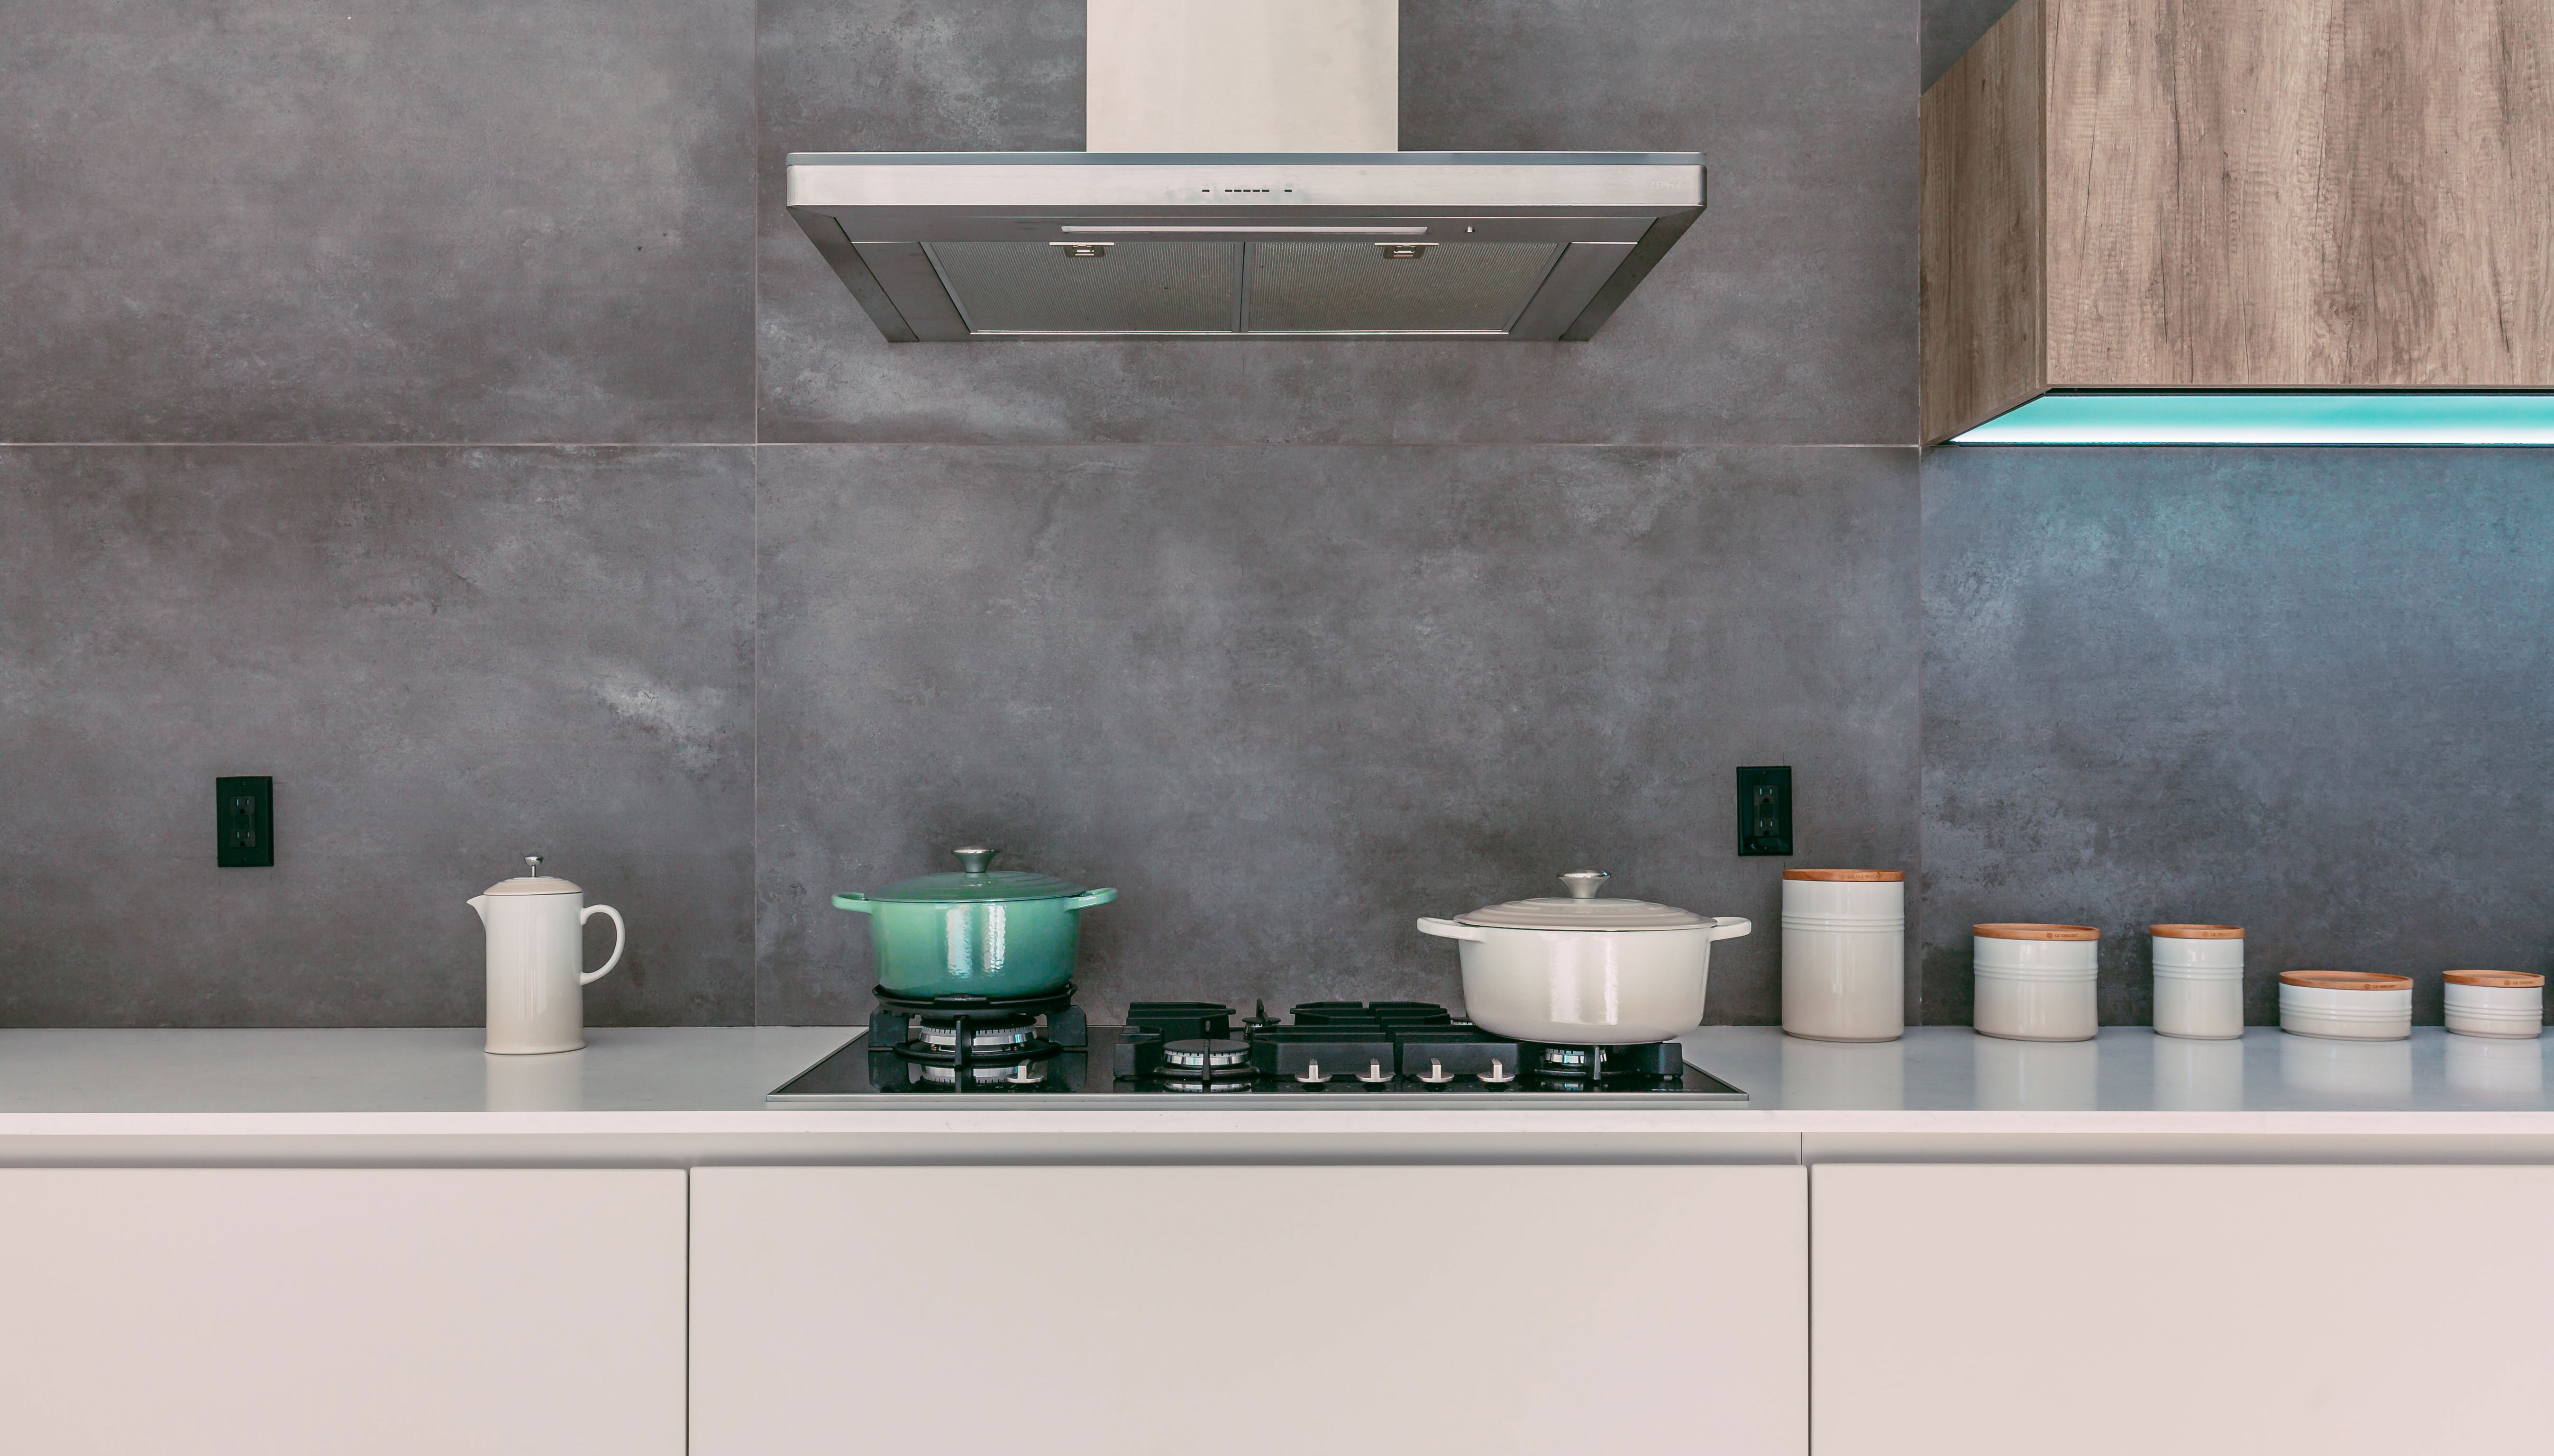 Can You Use Plastic Cladding in Kitchens?